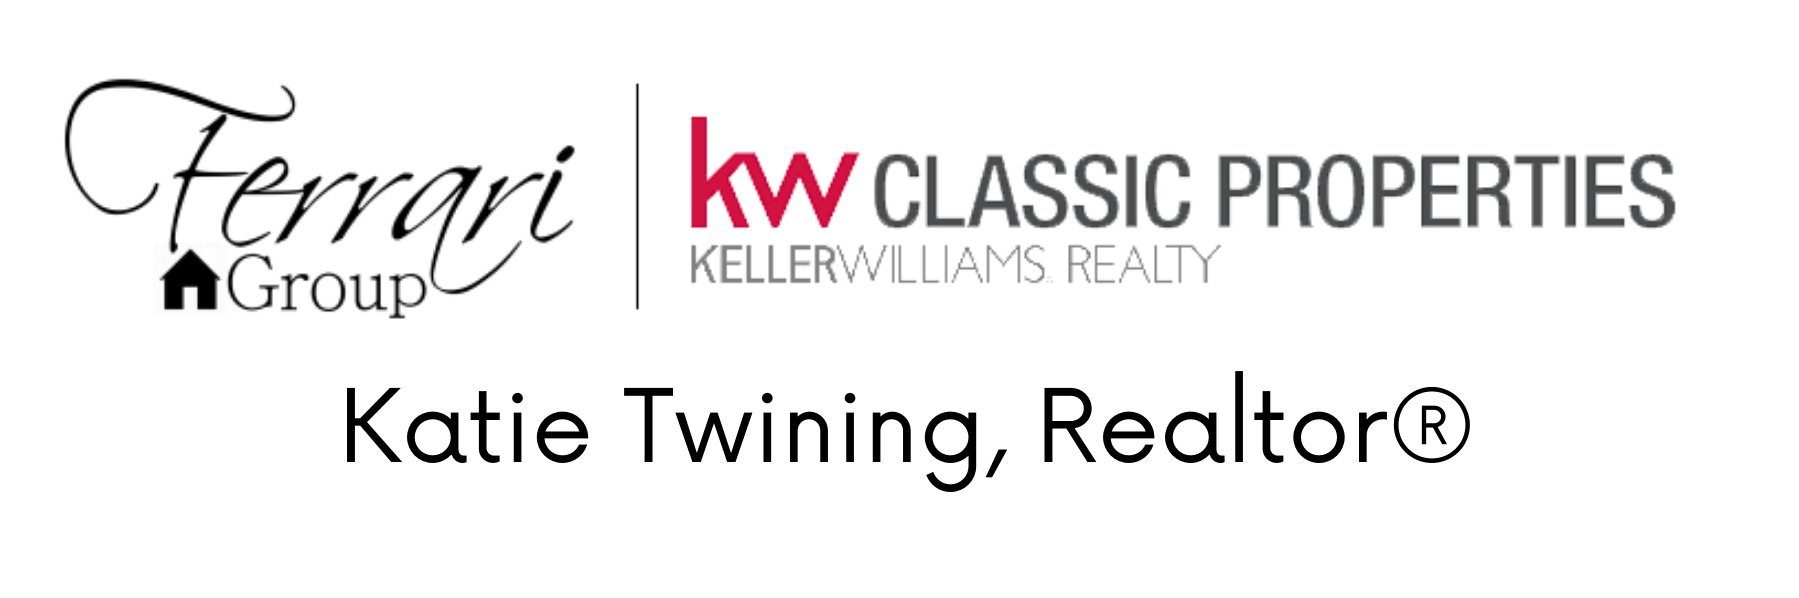 Katie Twining, Realtor, Ferrari Home Group, Keller Williams Classic Properties Realty